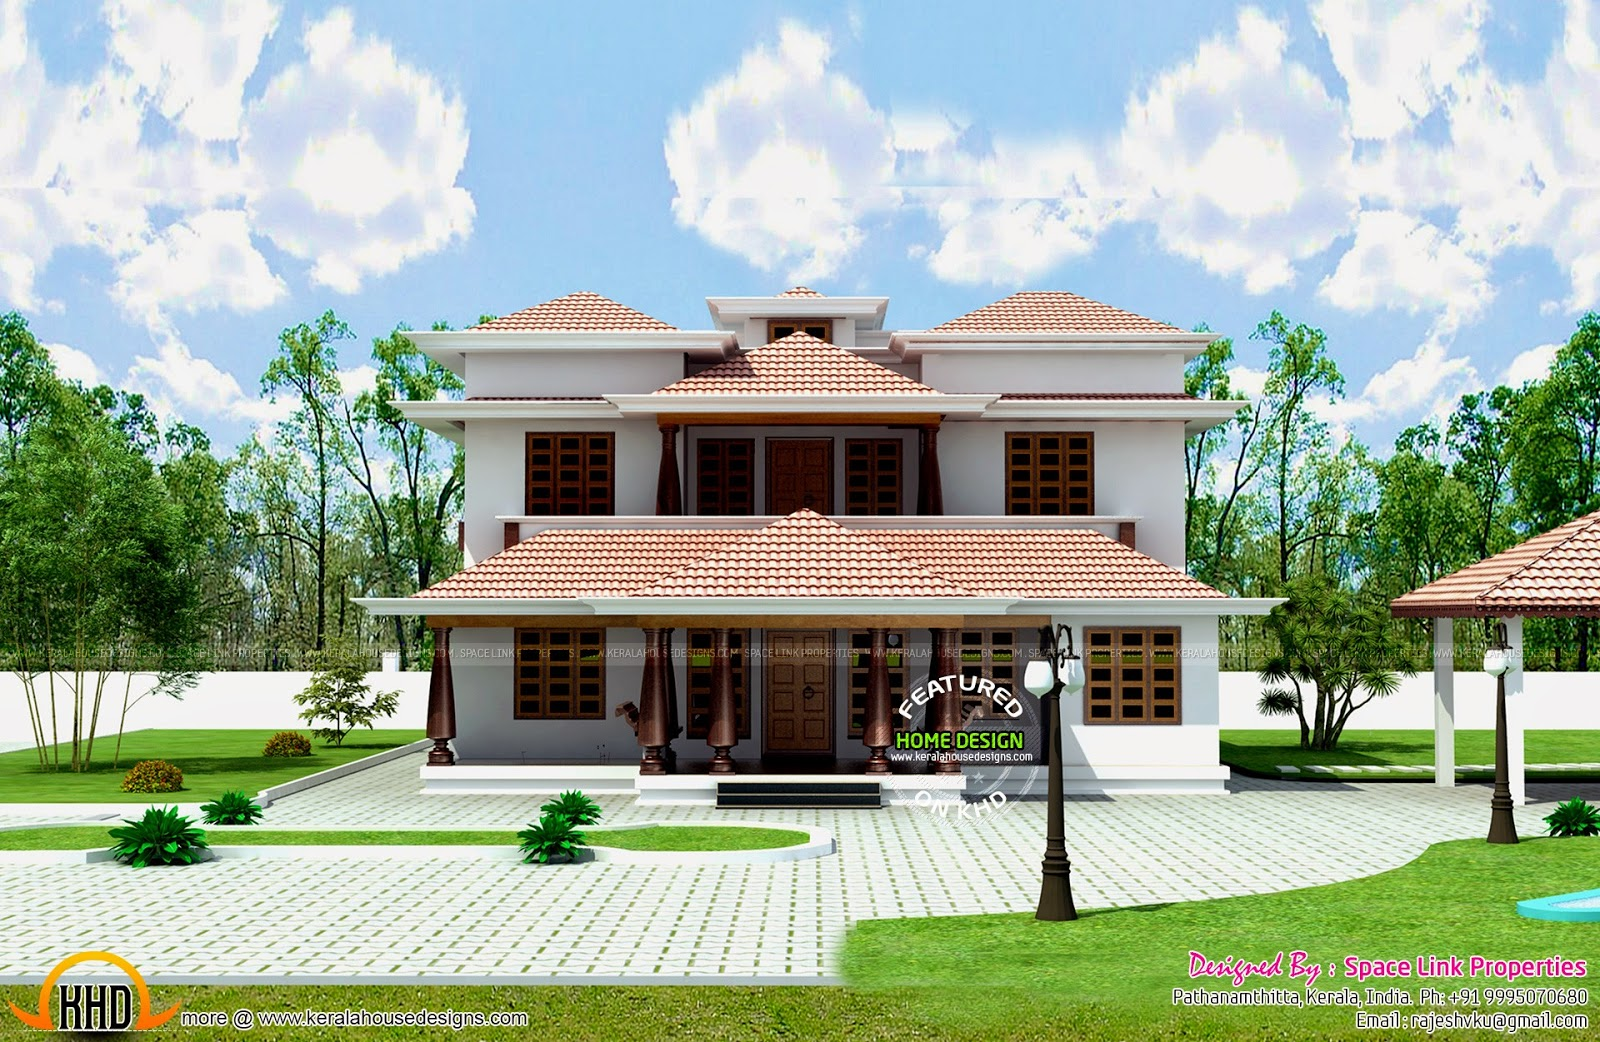 Typical kerala traditional house kerala home design and for Traditional home design ideas